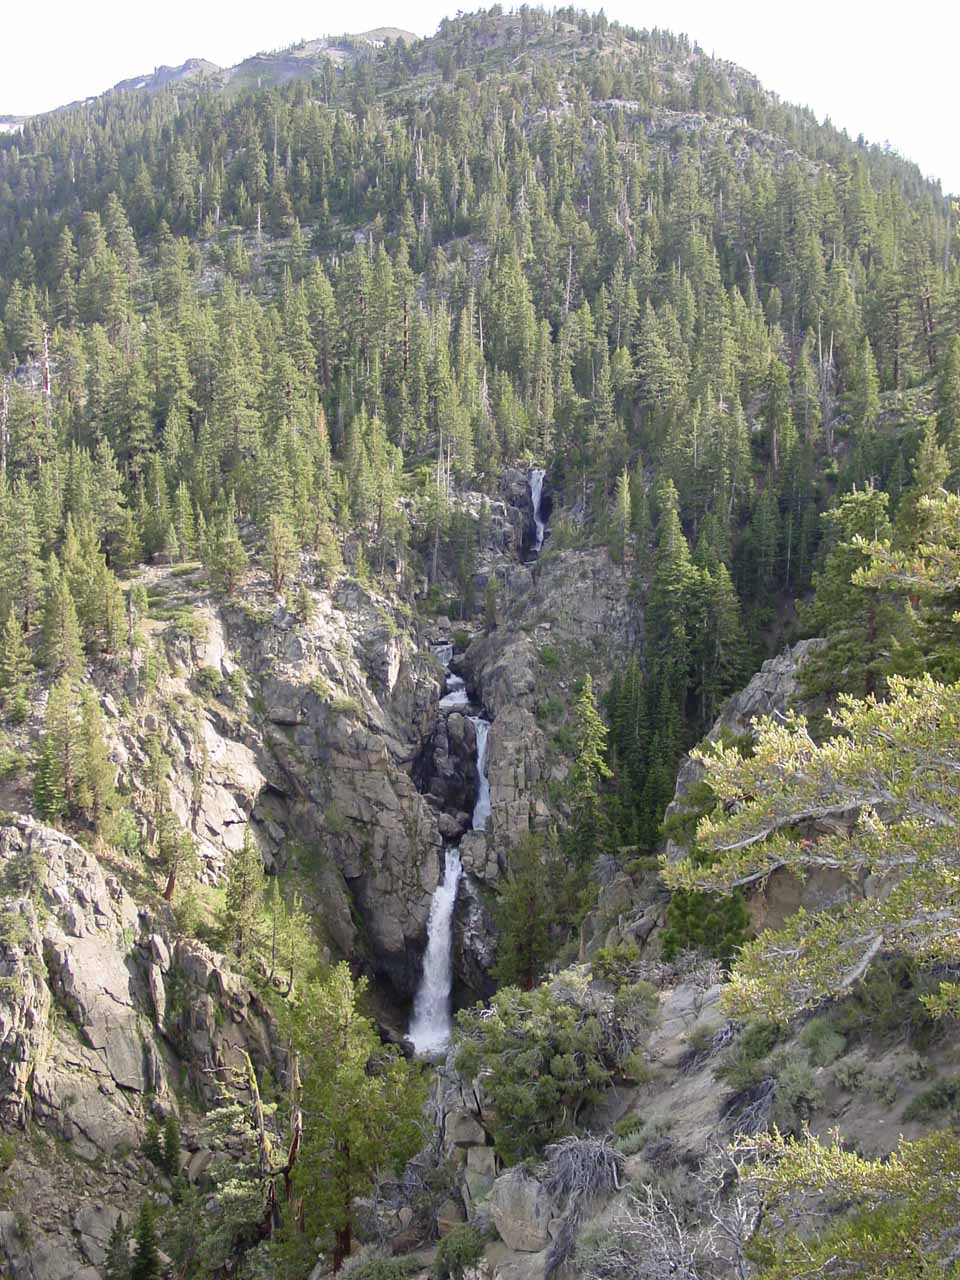 The full context of Leavitt Falls from the falls overlook